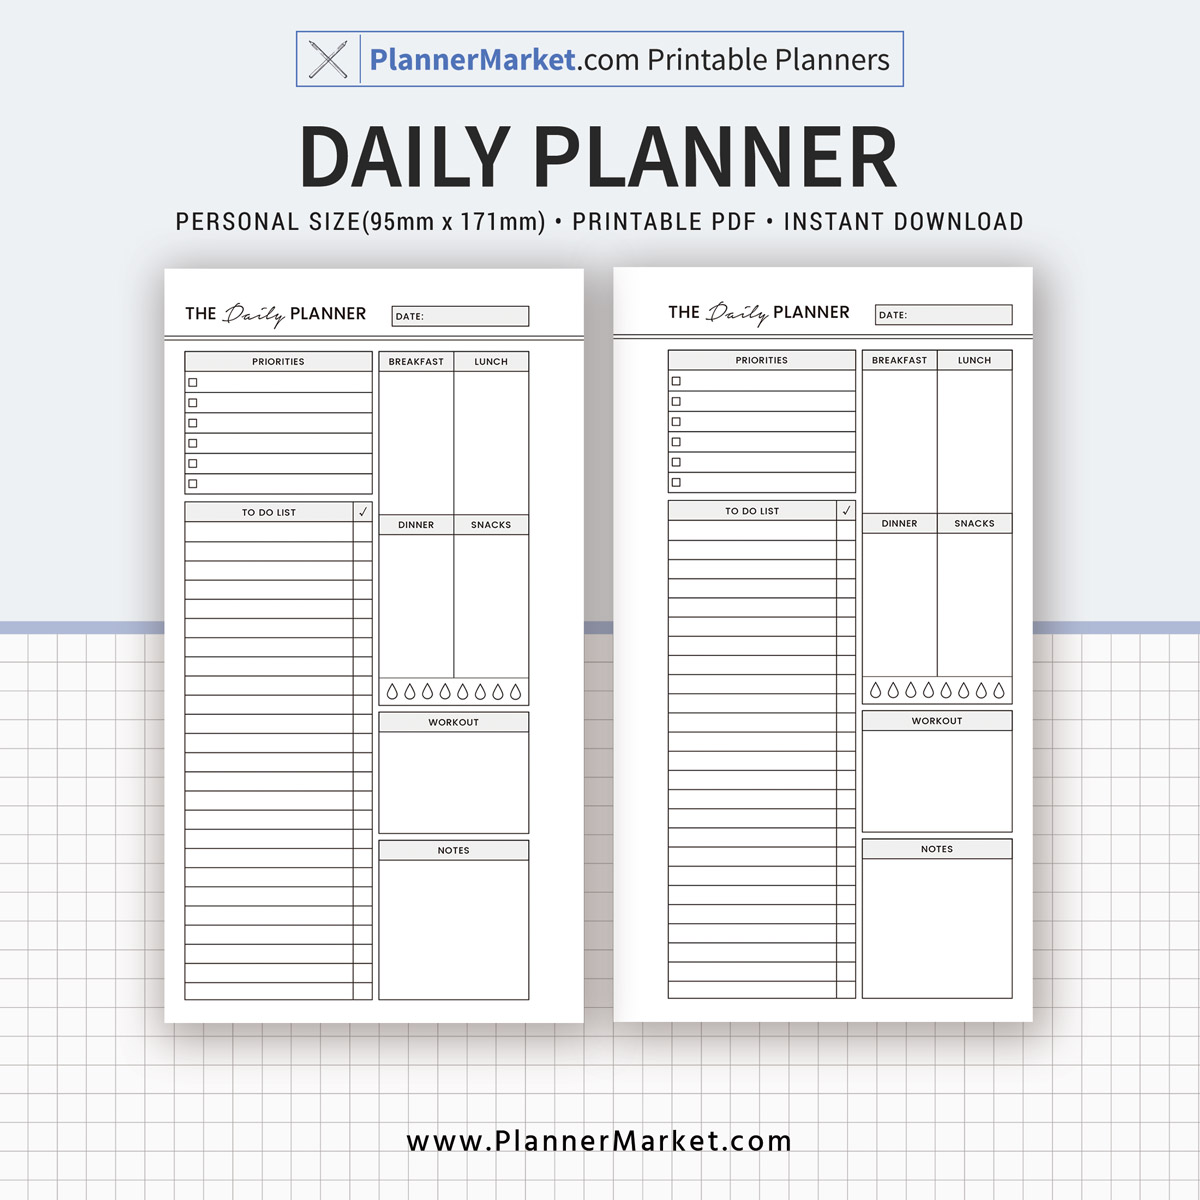 photo regarding Planner Refills called Everyday Planner, 2019 Planner, Unique Measurement Inserts, Planner Refill, Planner Binder, Printable Planner, Immediate Down load